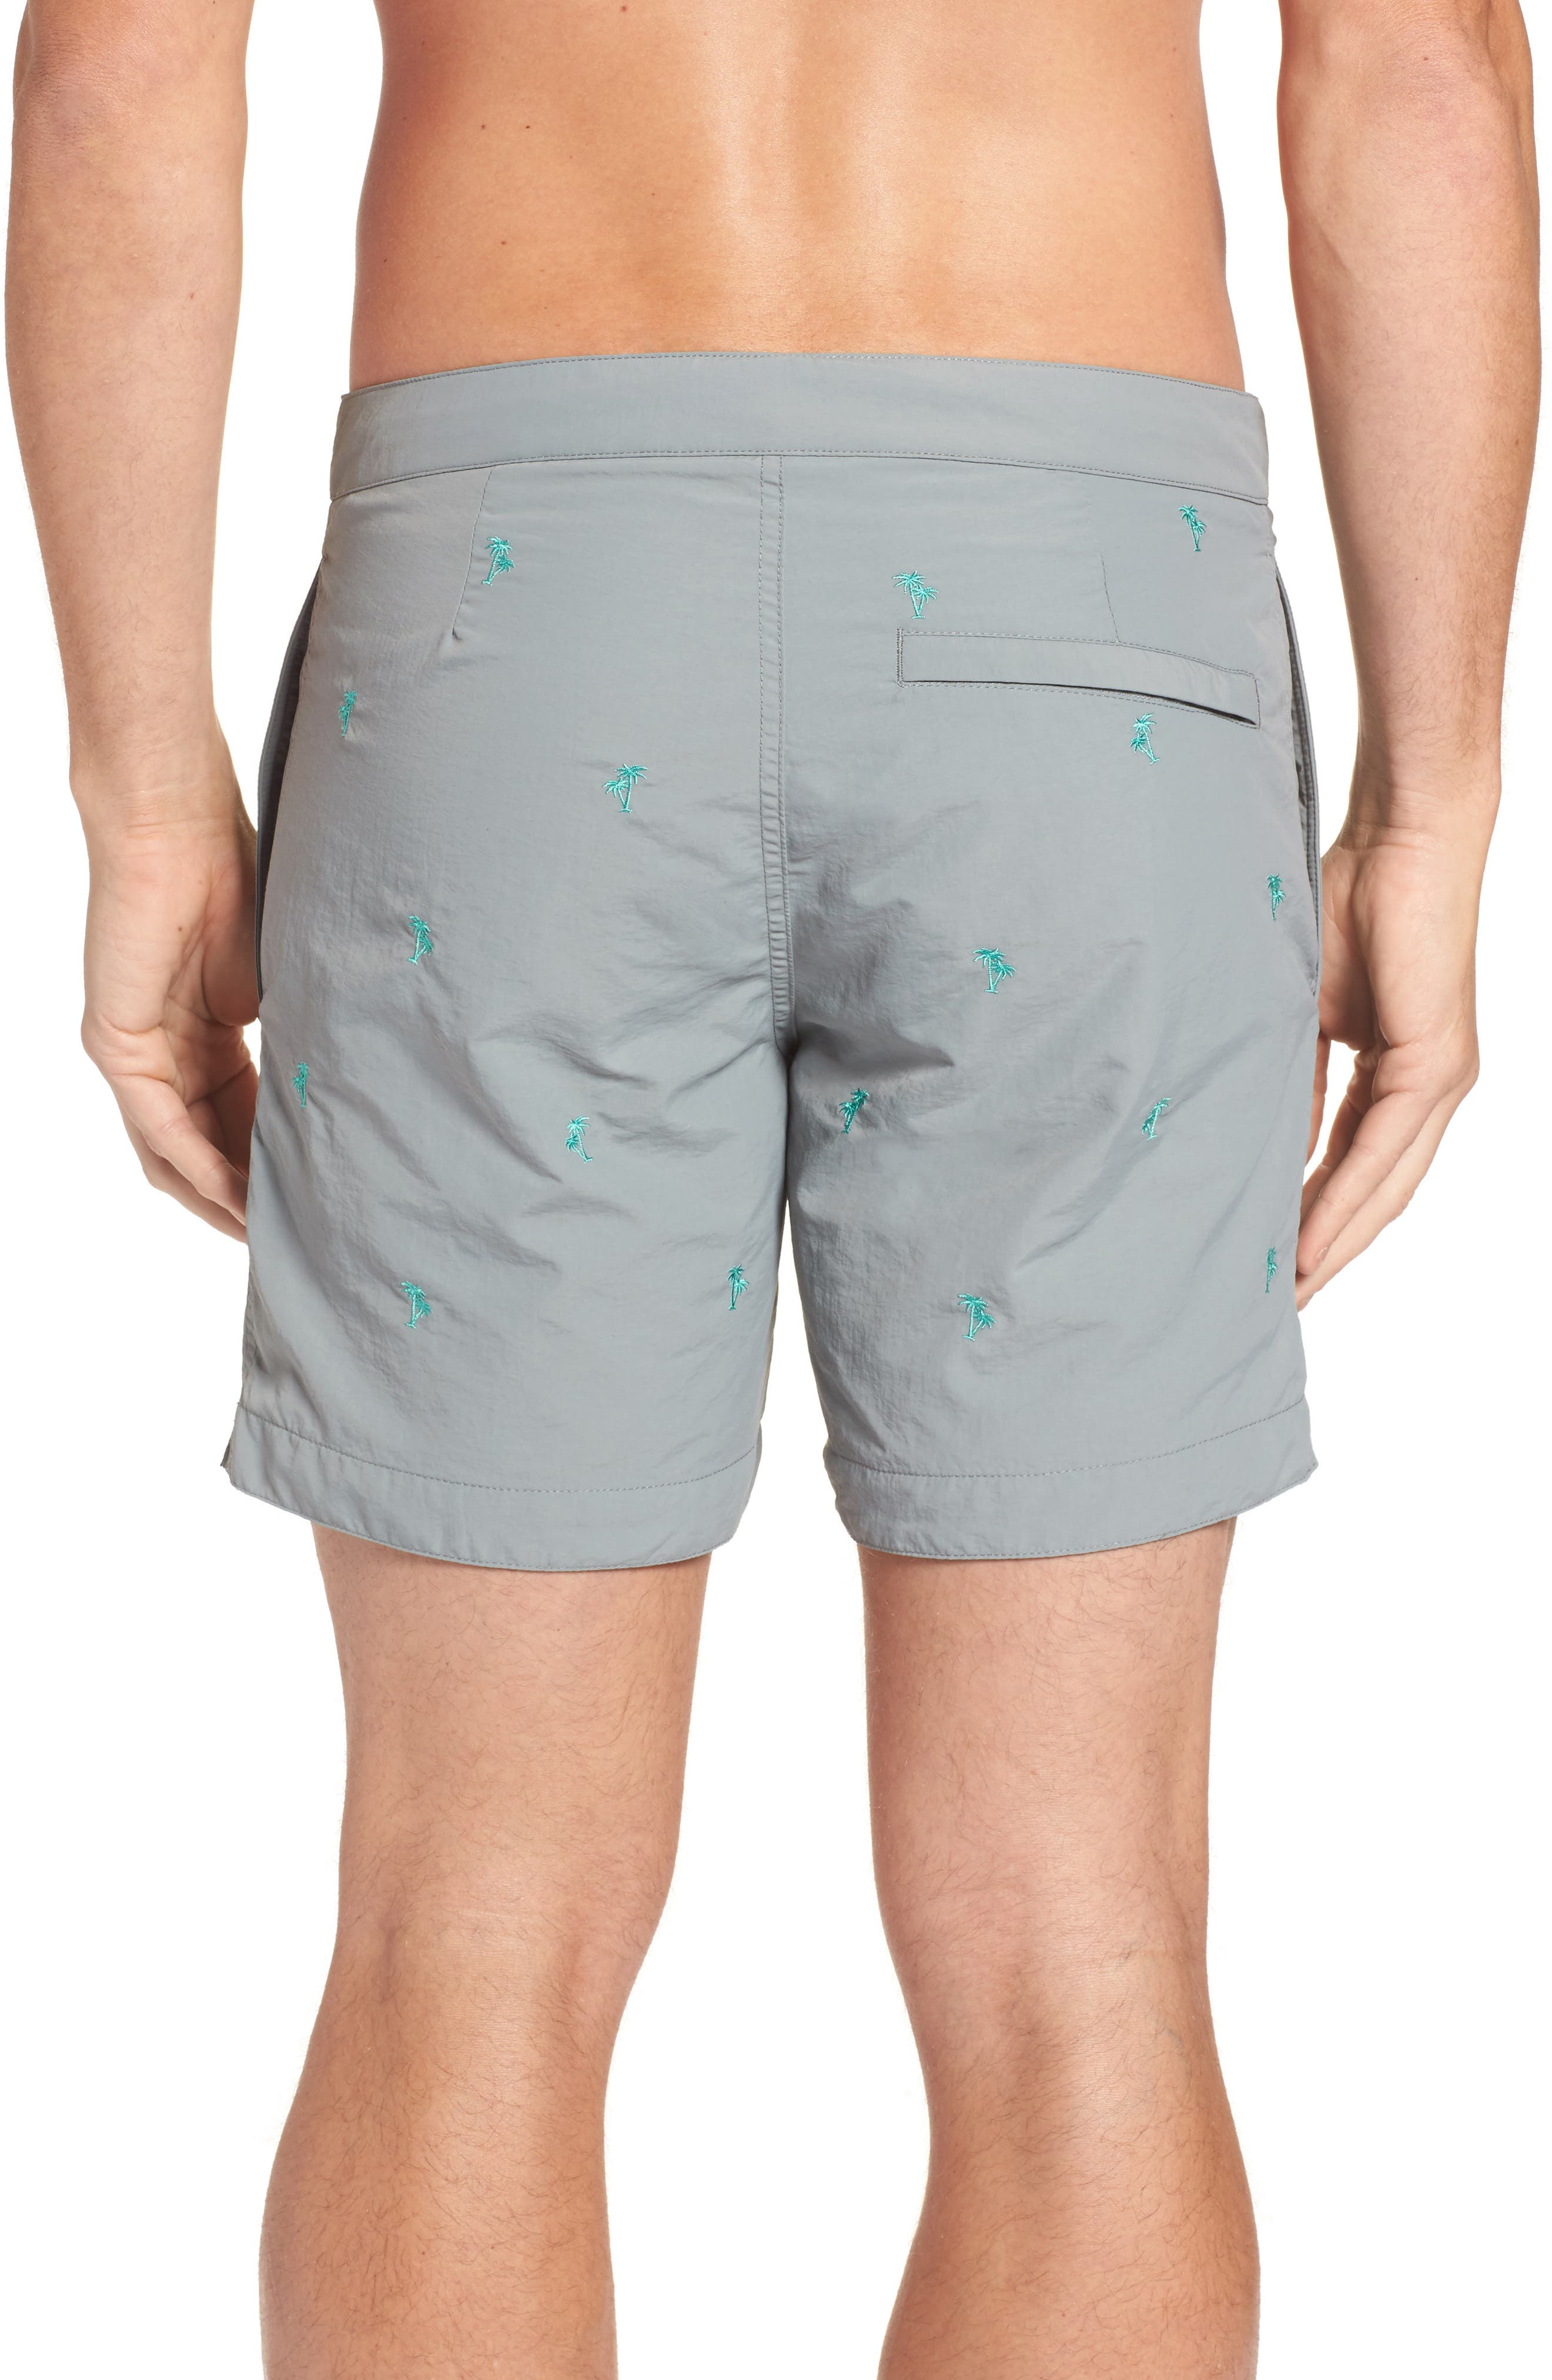 Aruba Tailored Fit Embroidered Palm Swim Trunks,                             Alternate thumbnail 2, color,                             031